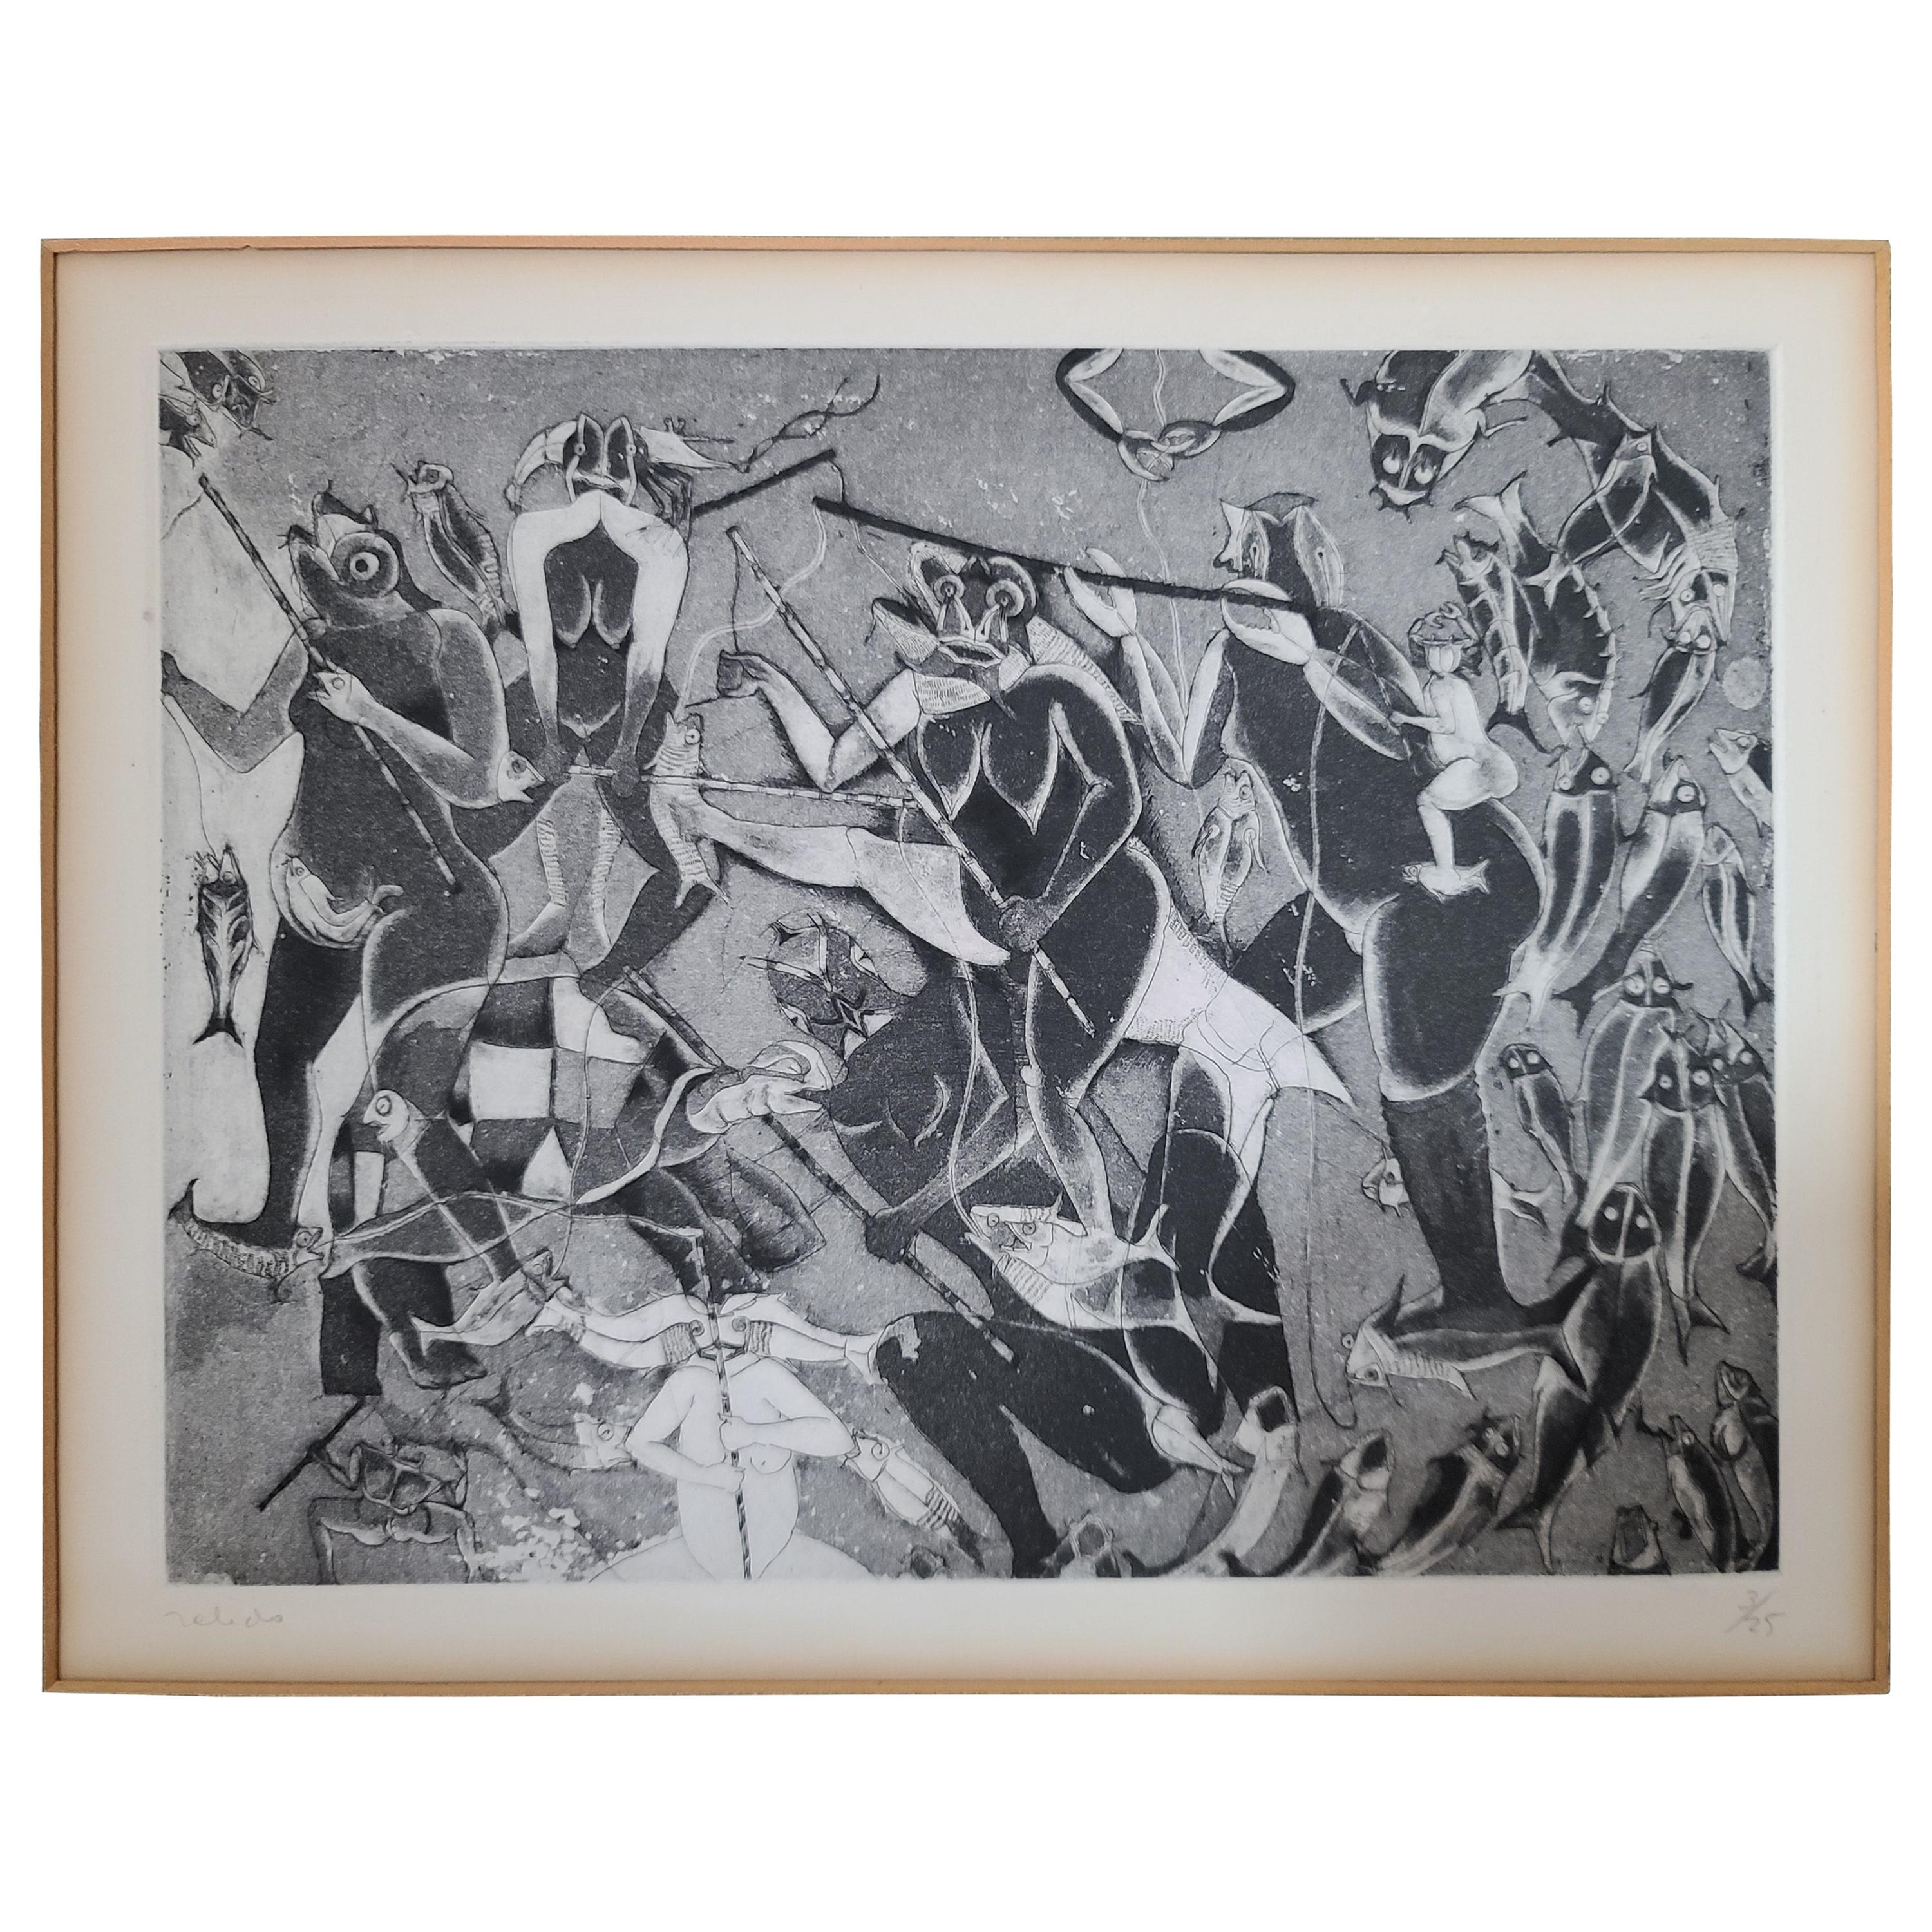 Rare Untitled Etching by Mexican Master Francisco Toledo 3/25, 1971